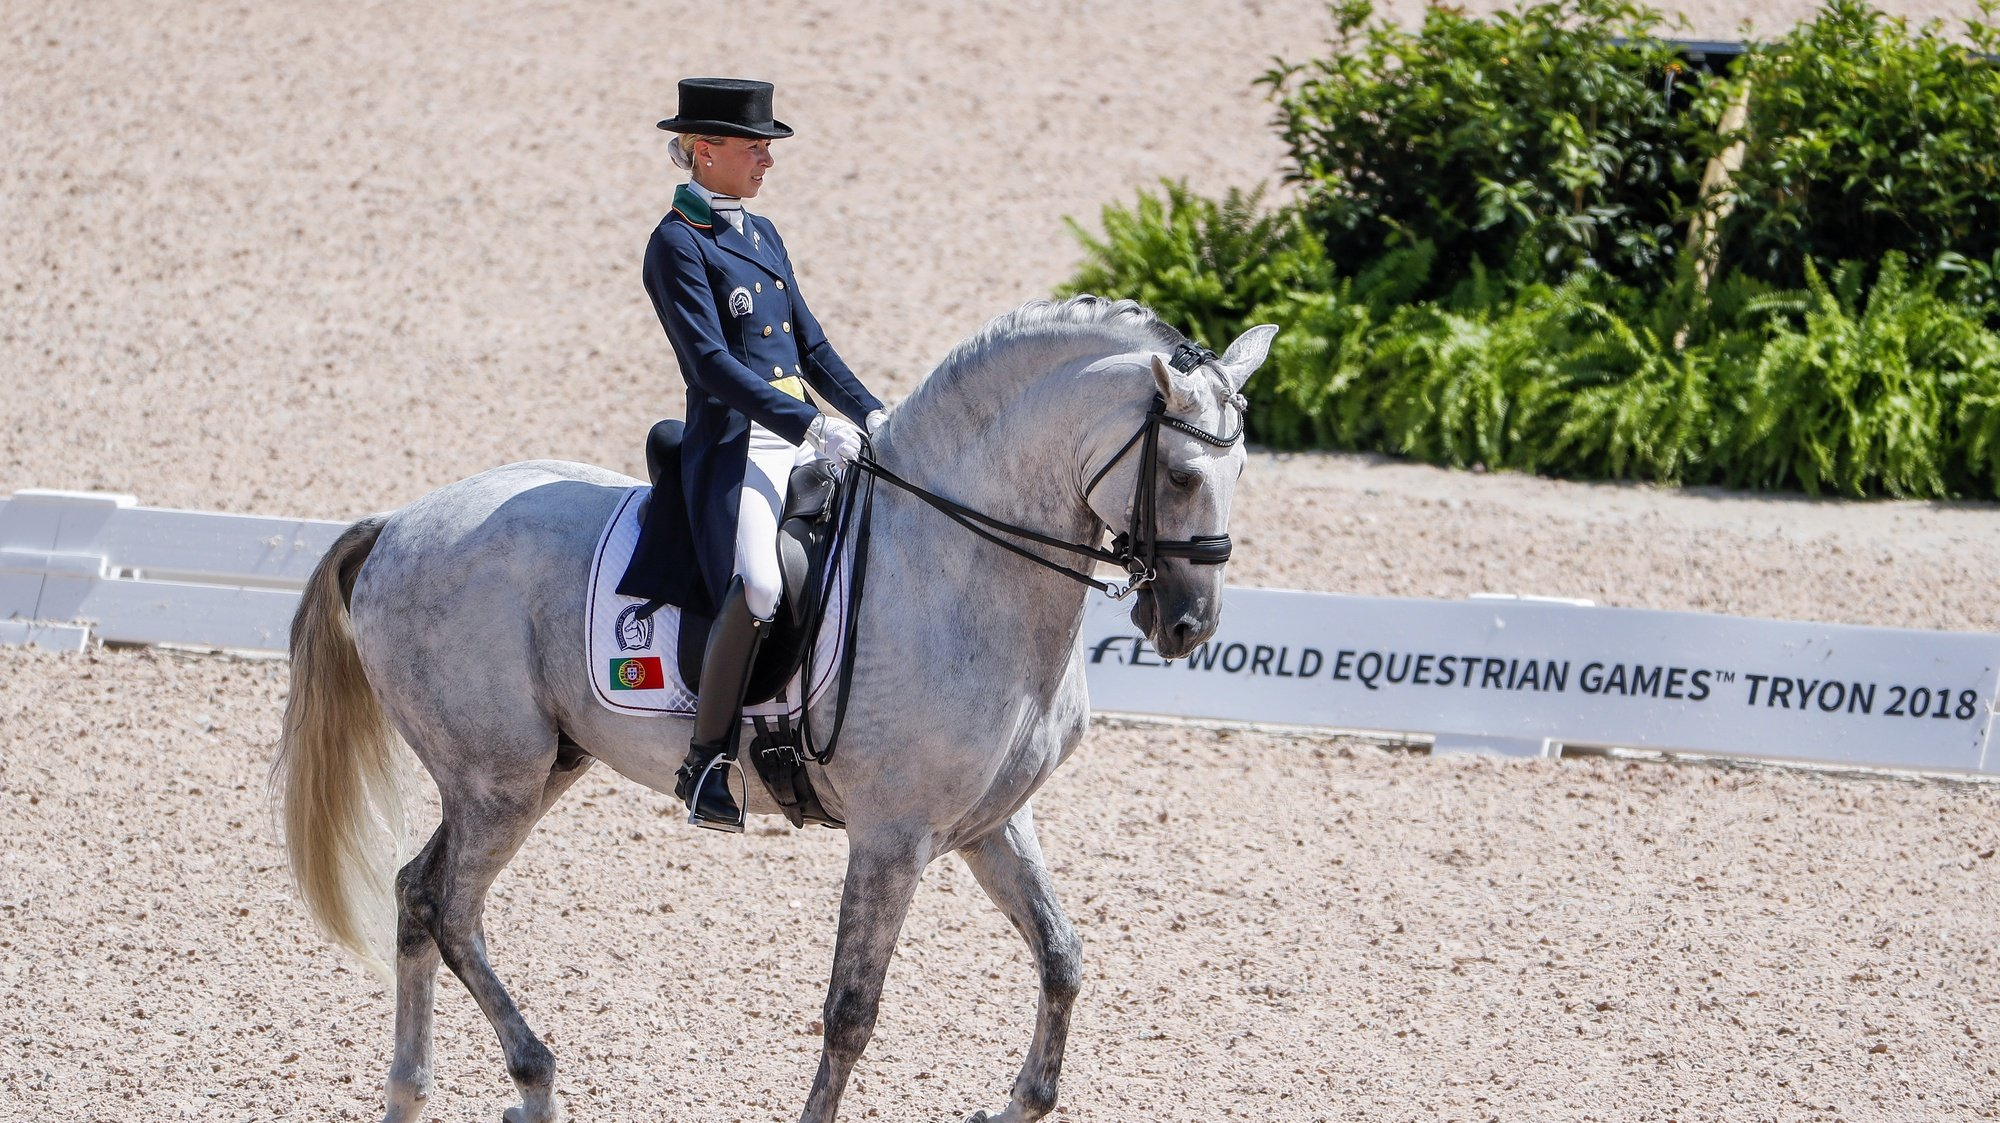 epa07018202 Maria Caetano of Portugal competes aboard Coroado during the team championship Grand Prix de Dressage at the FEI World Equestrian Games 2018 at the Tryon International Equestrian Center in Mill Spring, North Carolina, USA, 13 September 2018. The World Equestrian Games continue through 23 September 2018.  EPA/ERIK S. LESSER